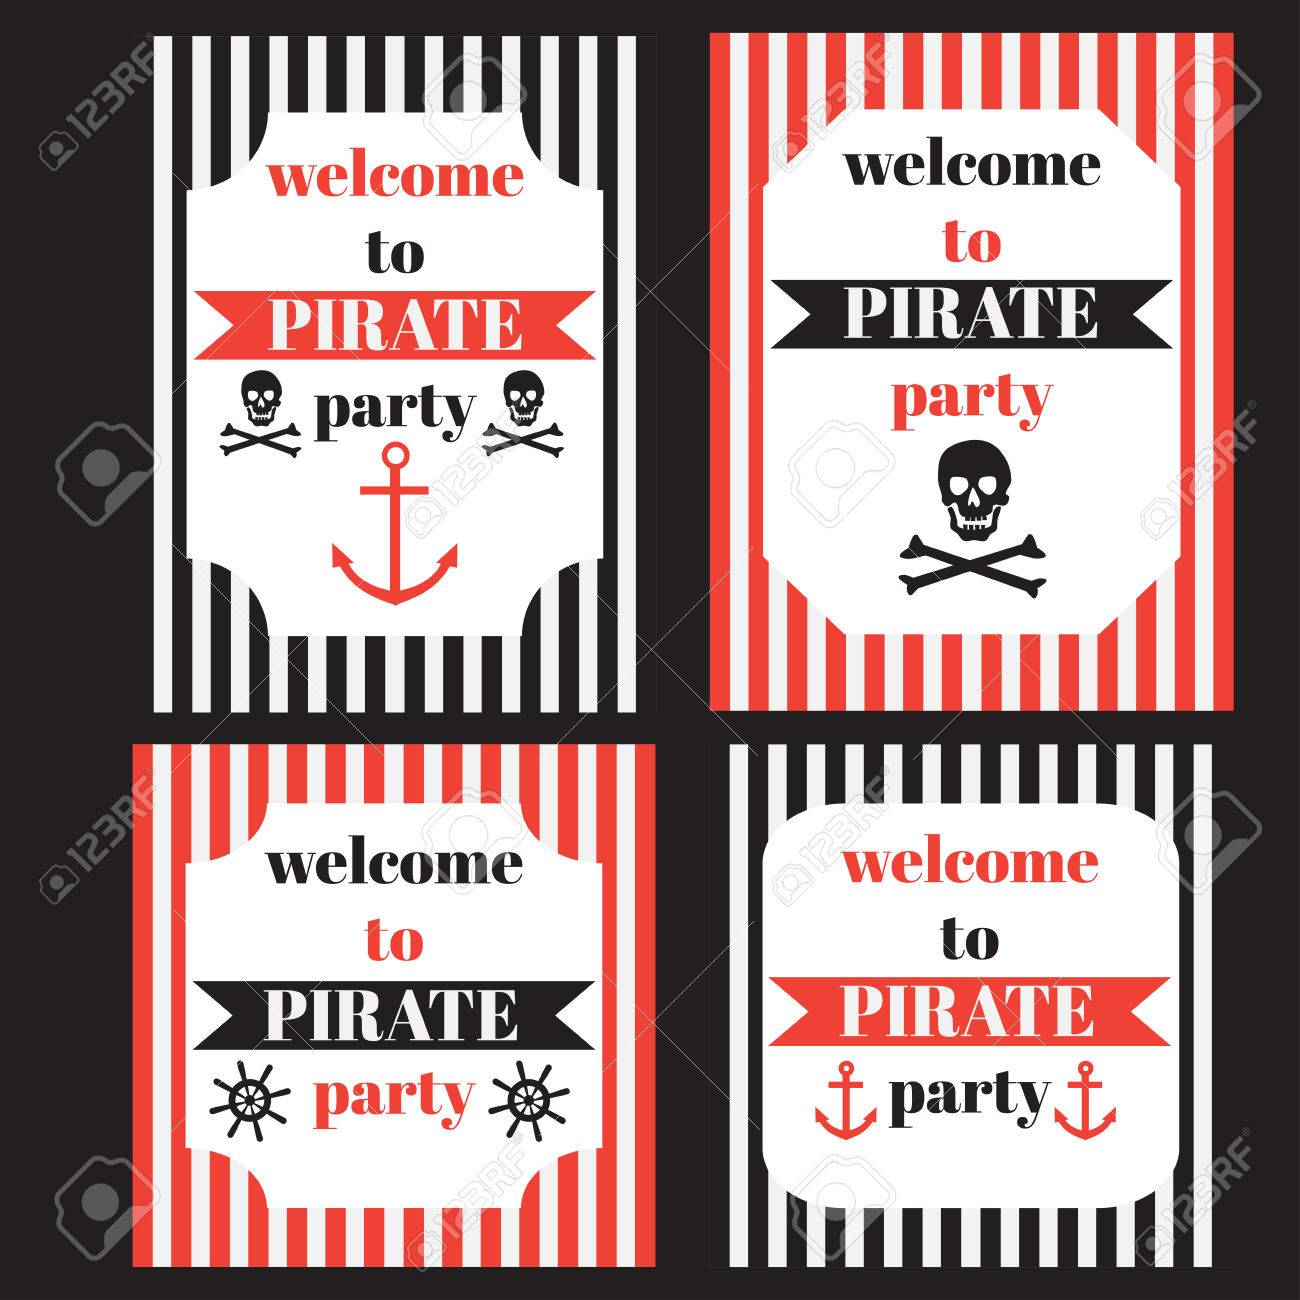 Vintage nautical pirate party invitation nautical marine sailor vintage nautical pirate party invitation nautical marine sailor elements stock vector 51985941 stopboris Gallery